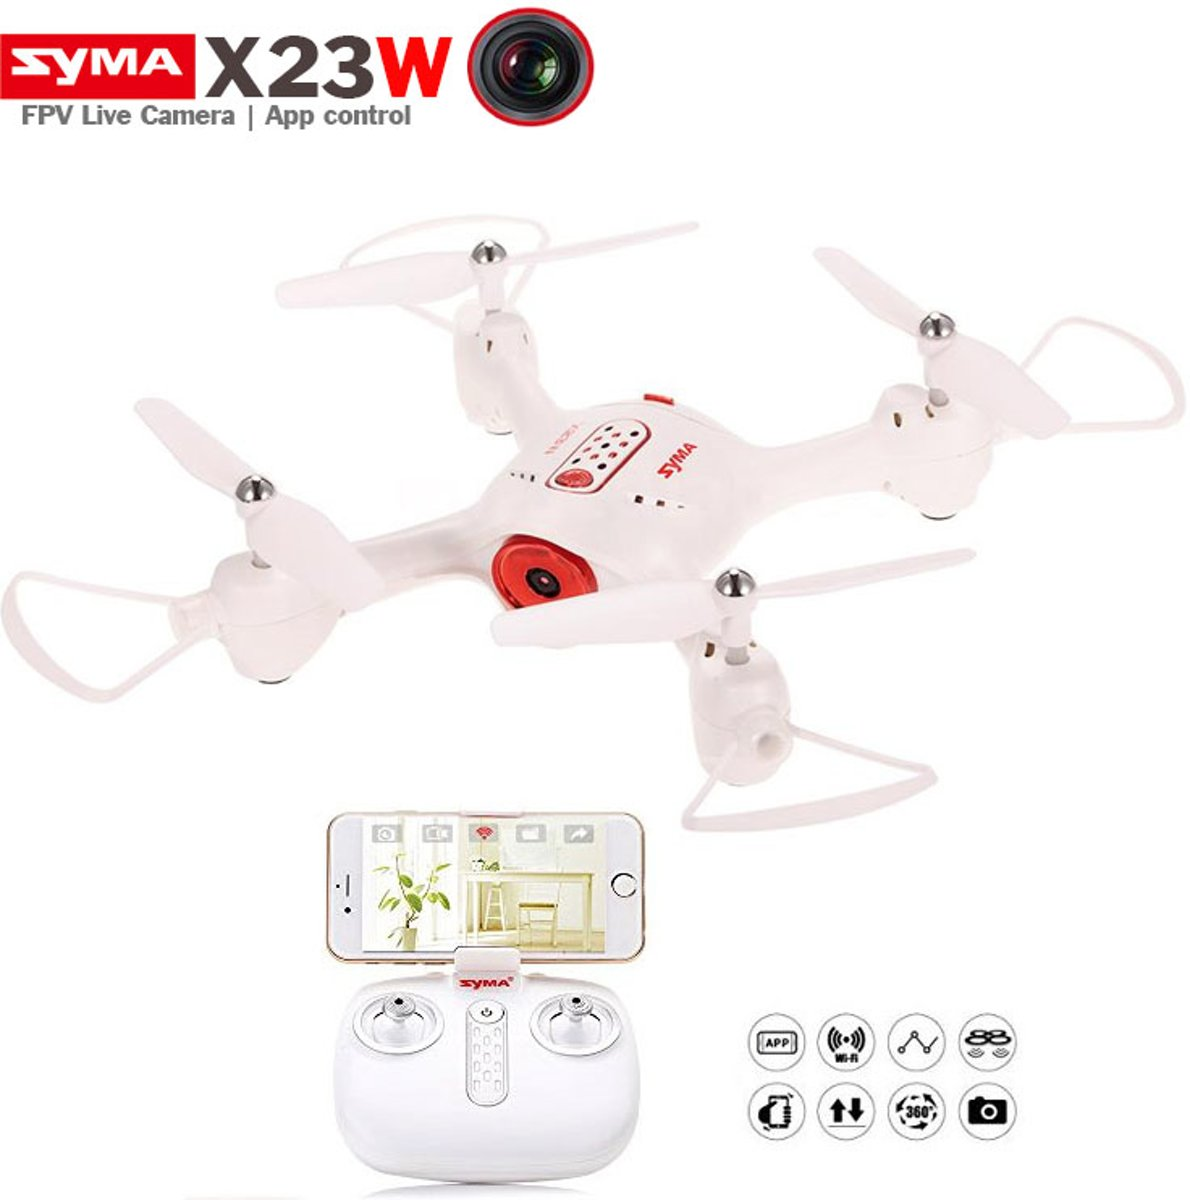 X23W Quadcopter - Live HD Camera FPV Drone met hovermode & App control functie - wit